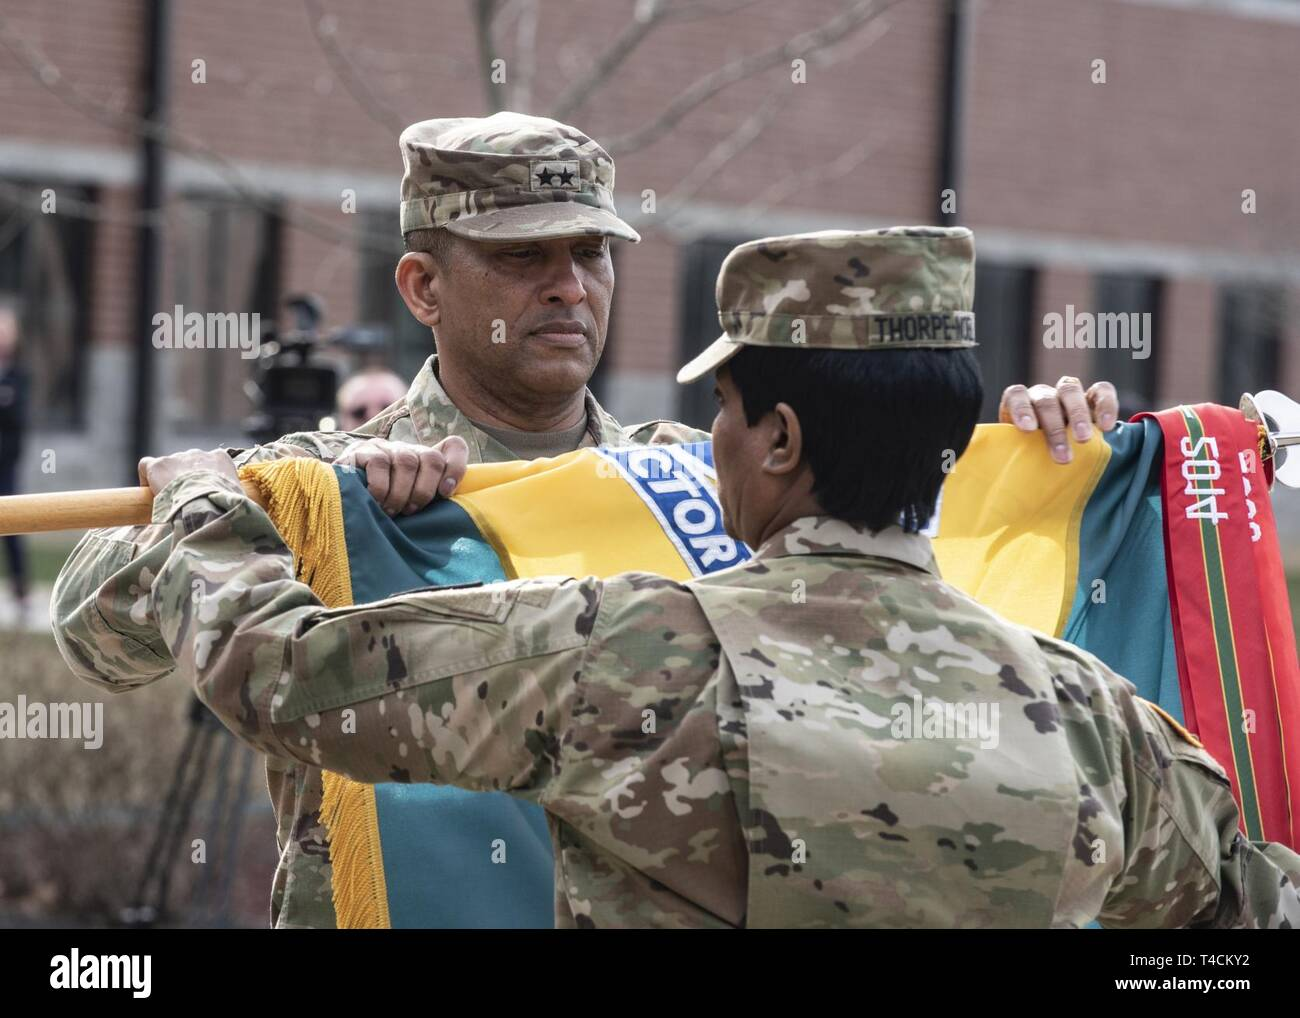 Maj. Gen. Jason T. Evans, U.S. Army Human Resources Command commanding general, furls the HRC unit colors during a repatching ceremony held at the Lt. Gen. Timothy J. Maude complex located on Fort Knox, Ky., March 20, 2019. Nearly 18 months prior, the Army designated HRC as a direct reporting unit to HQDA G1. As a DRU, HRC provides the distribution and strategic talent management of active and reserve component Soldiers and executes personnel-related programs and services Army-wide to ensure readiness and strengthen an agile and adaptive Army. - Stock Image